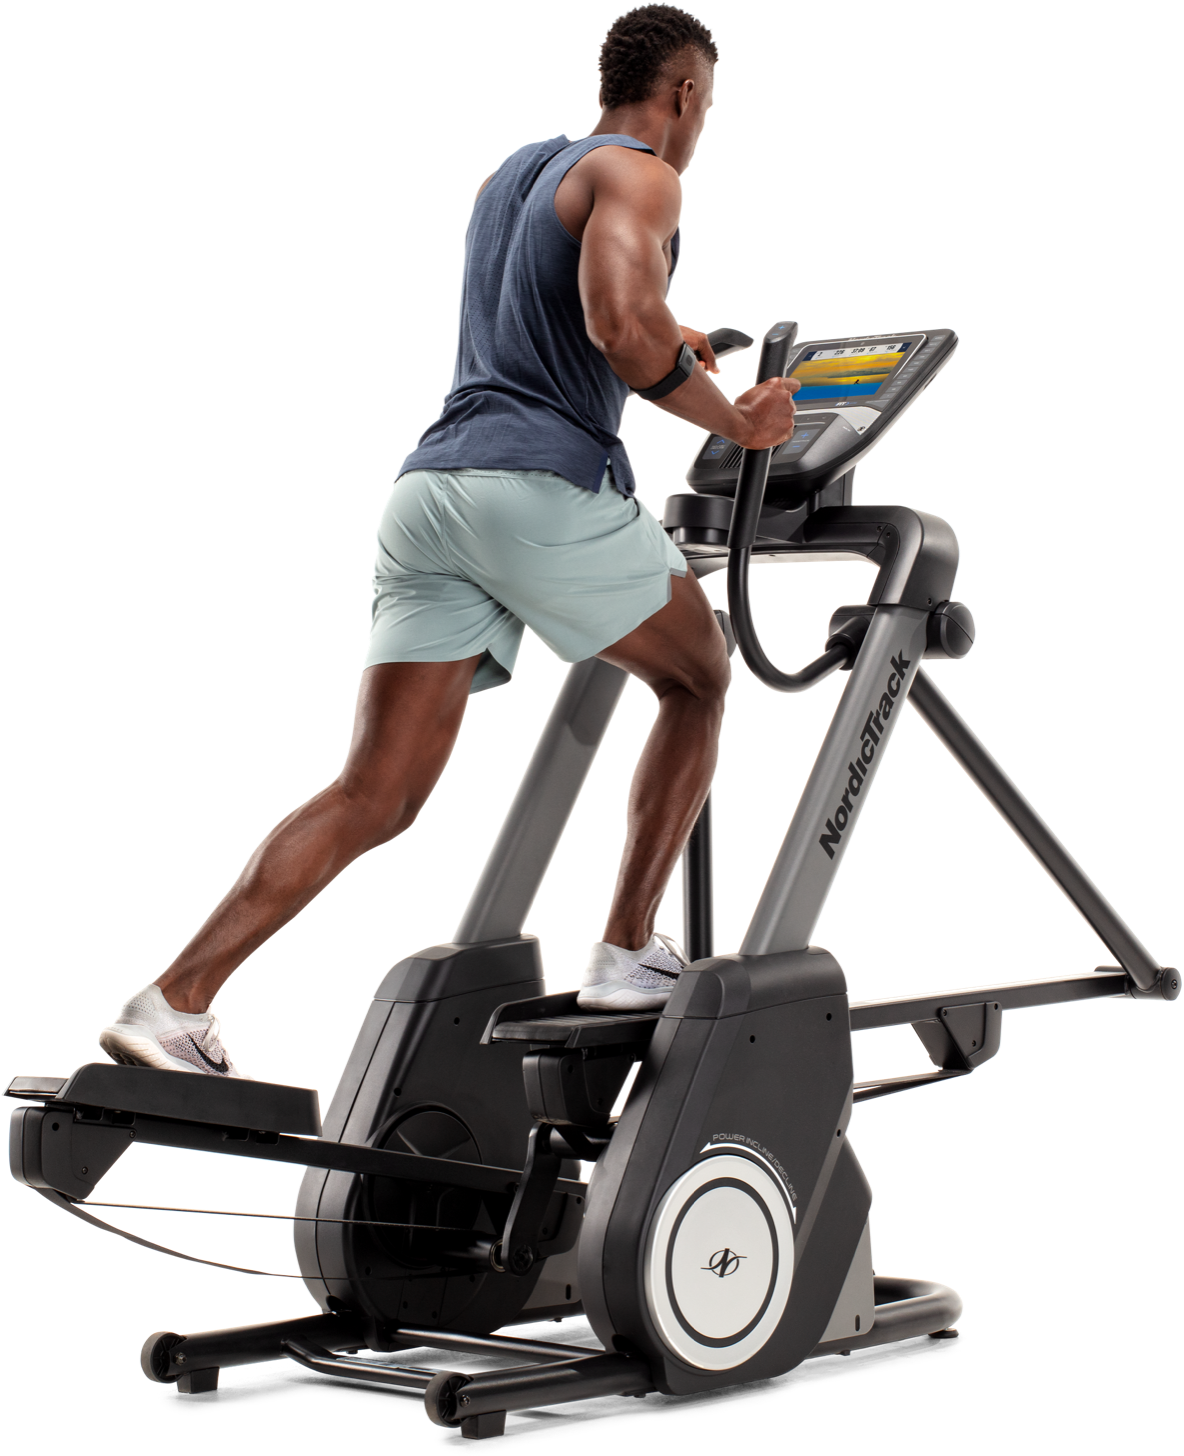 Man using an elliptical machine with the iFit app.